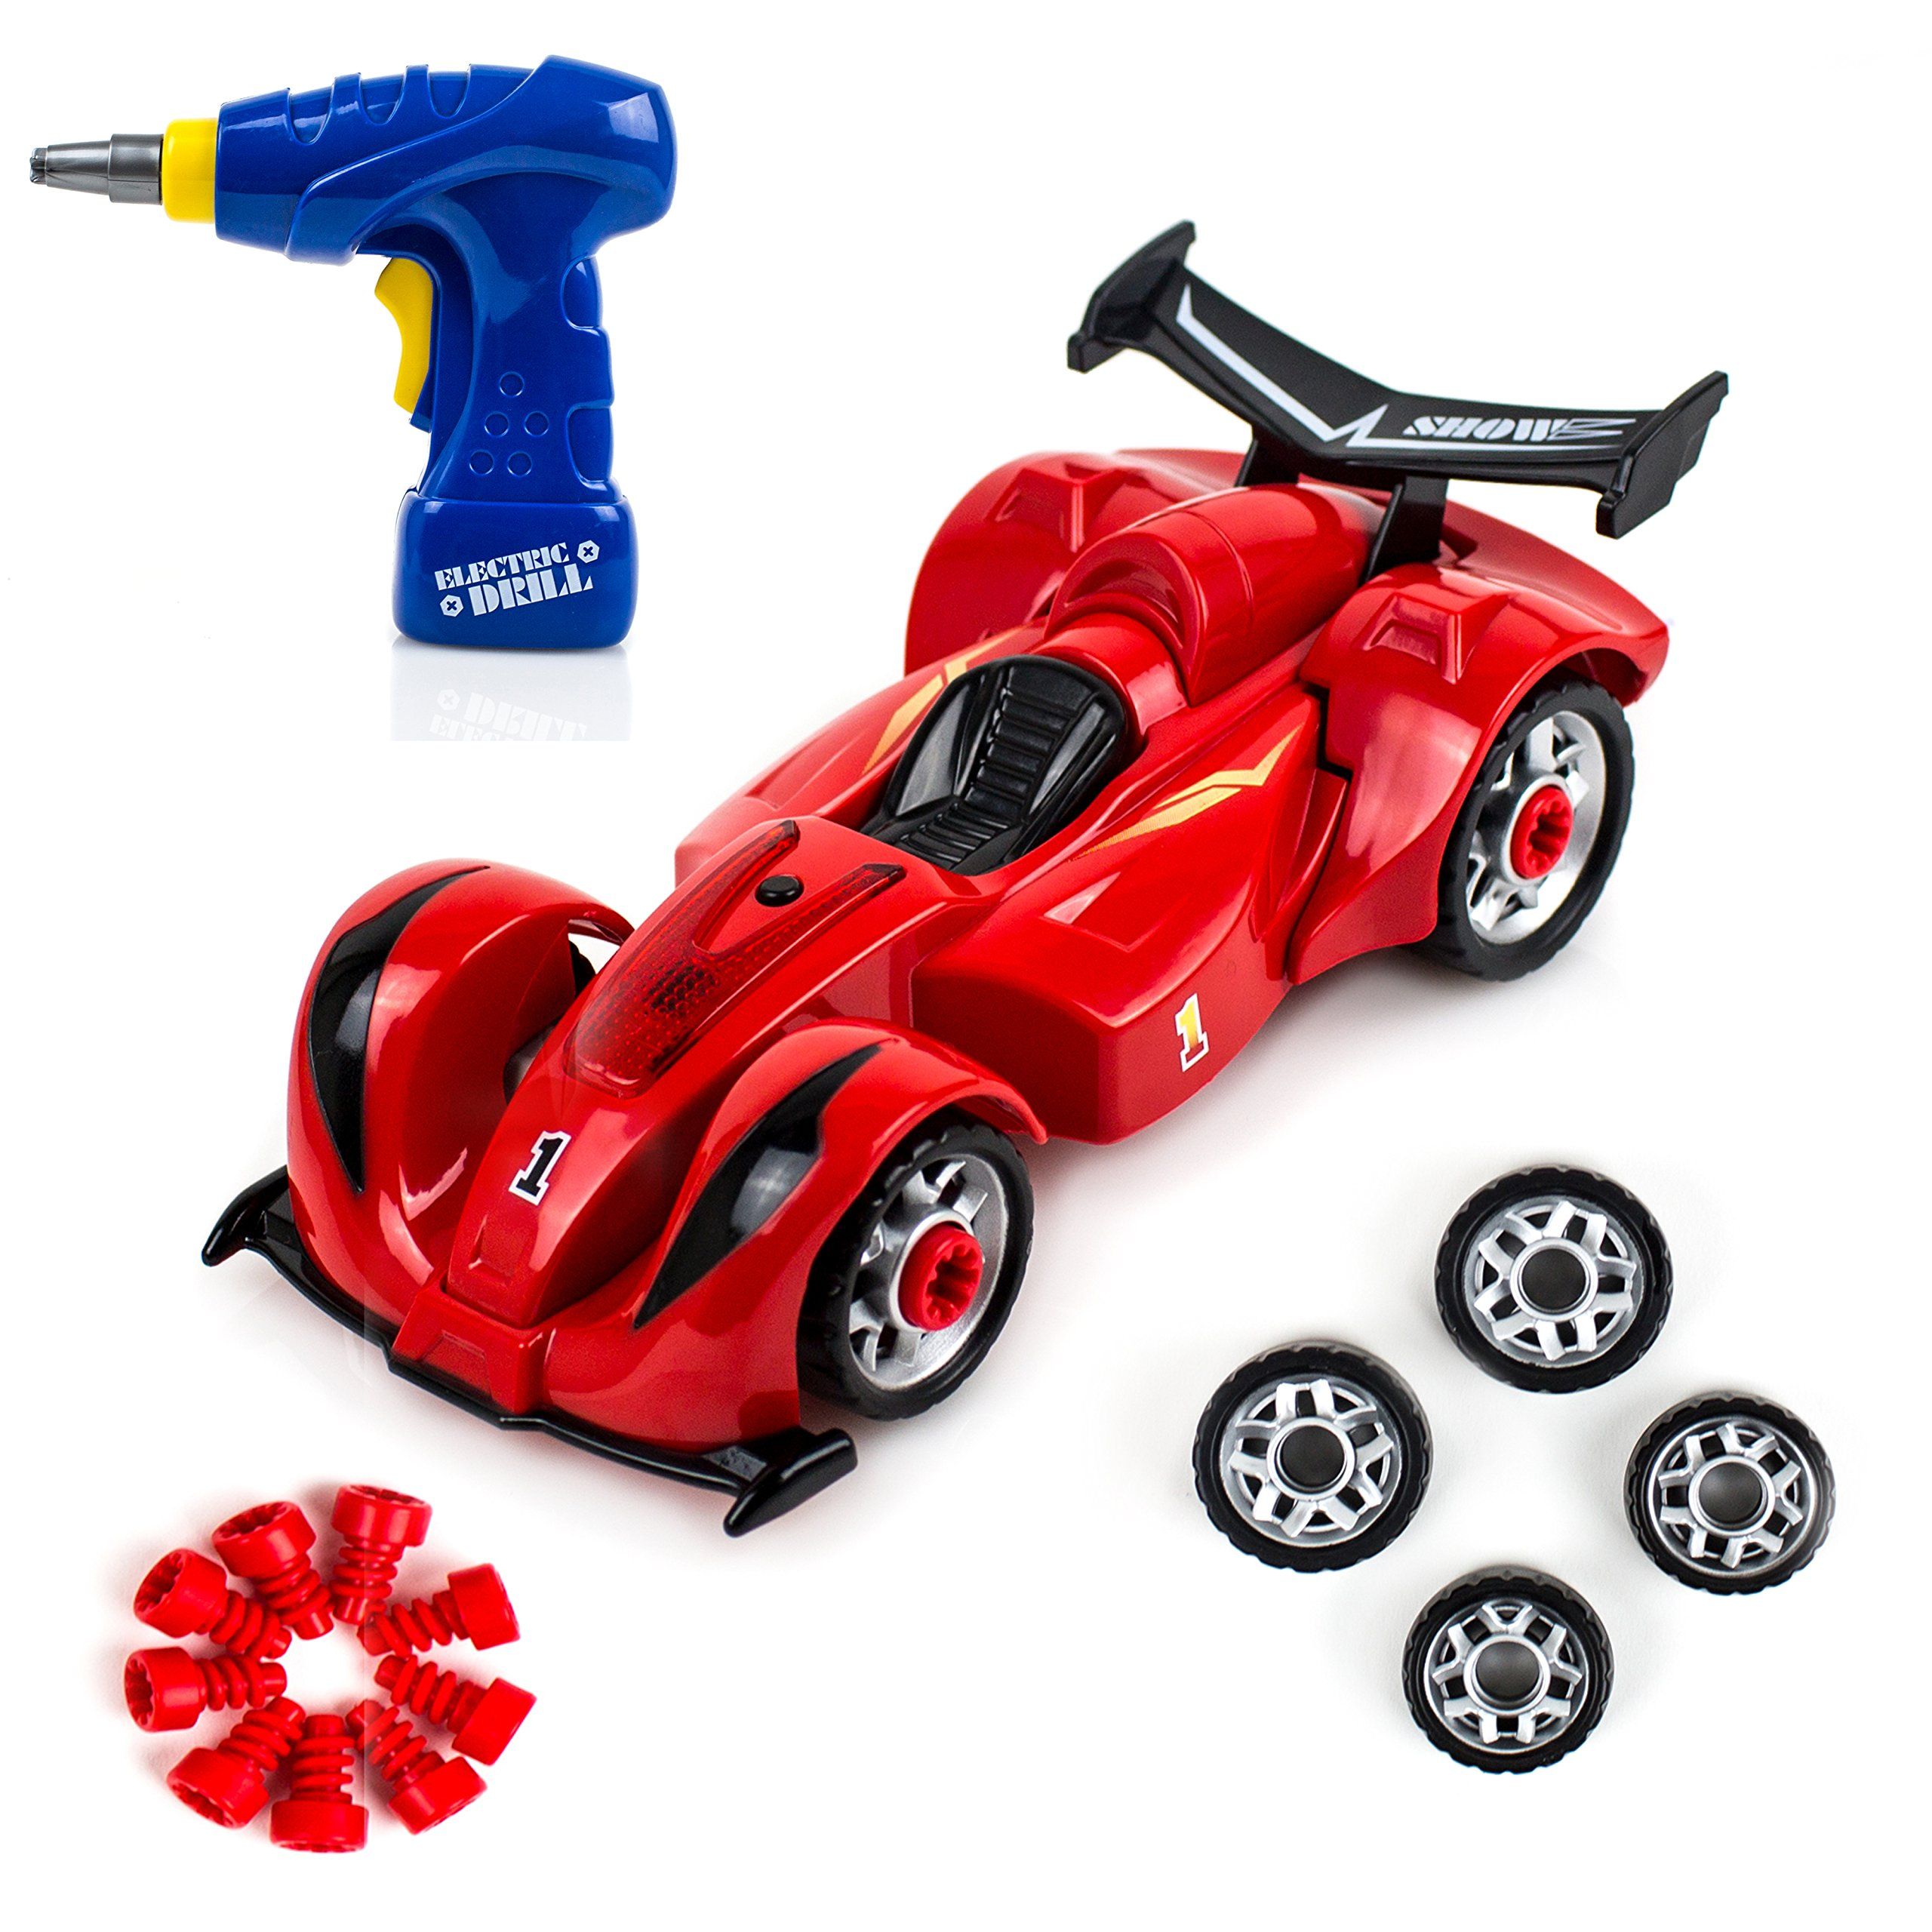 Toysery Take-A-Part Racing Car Toyset For Kids | Above 10 Pieces Take Apart Electric Play Drill and Modification Pieces | Race Car Develop Fine Motor Skills And Hand-Eye Coordination .